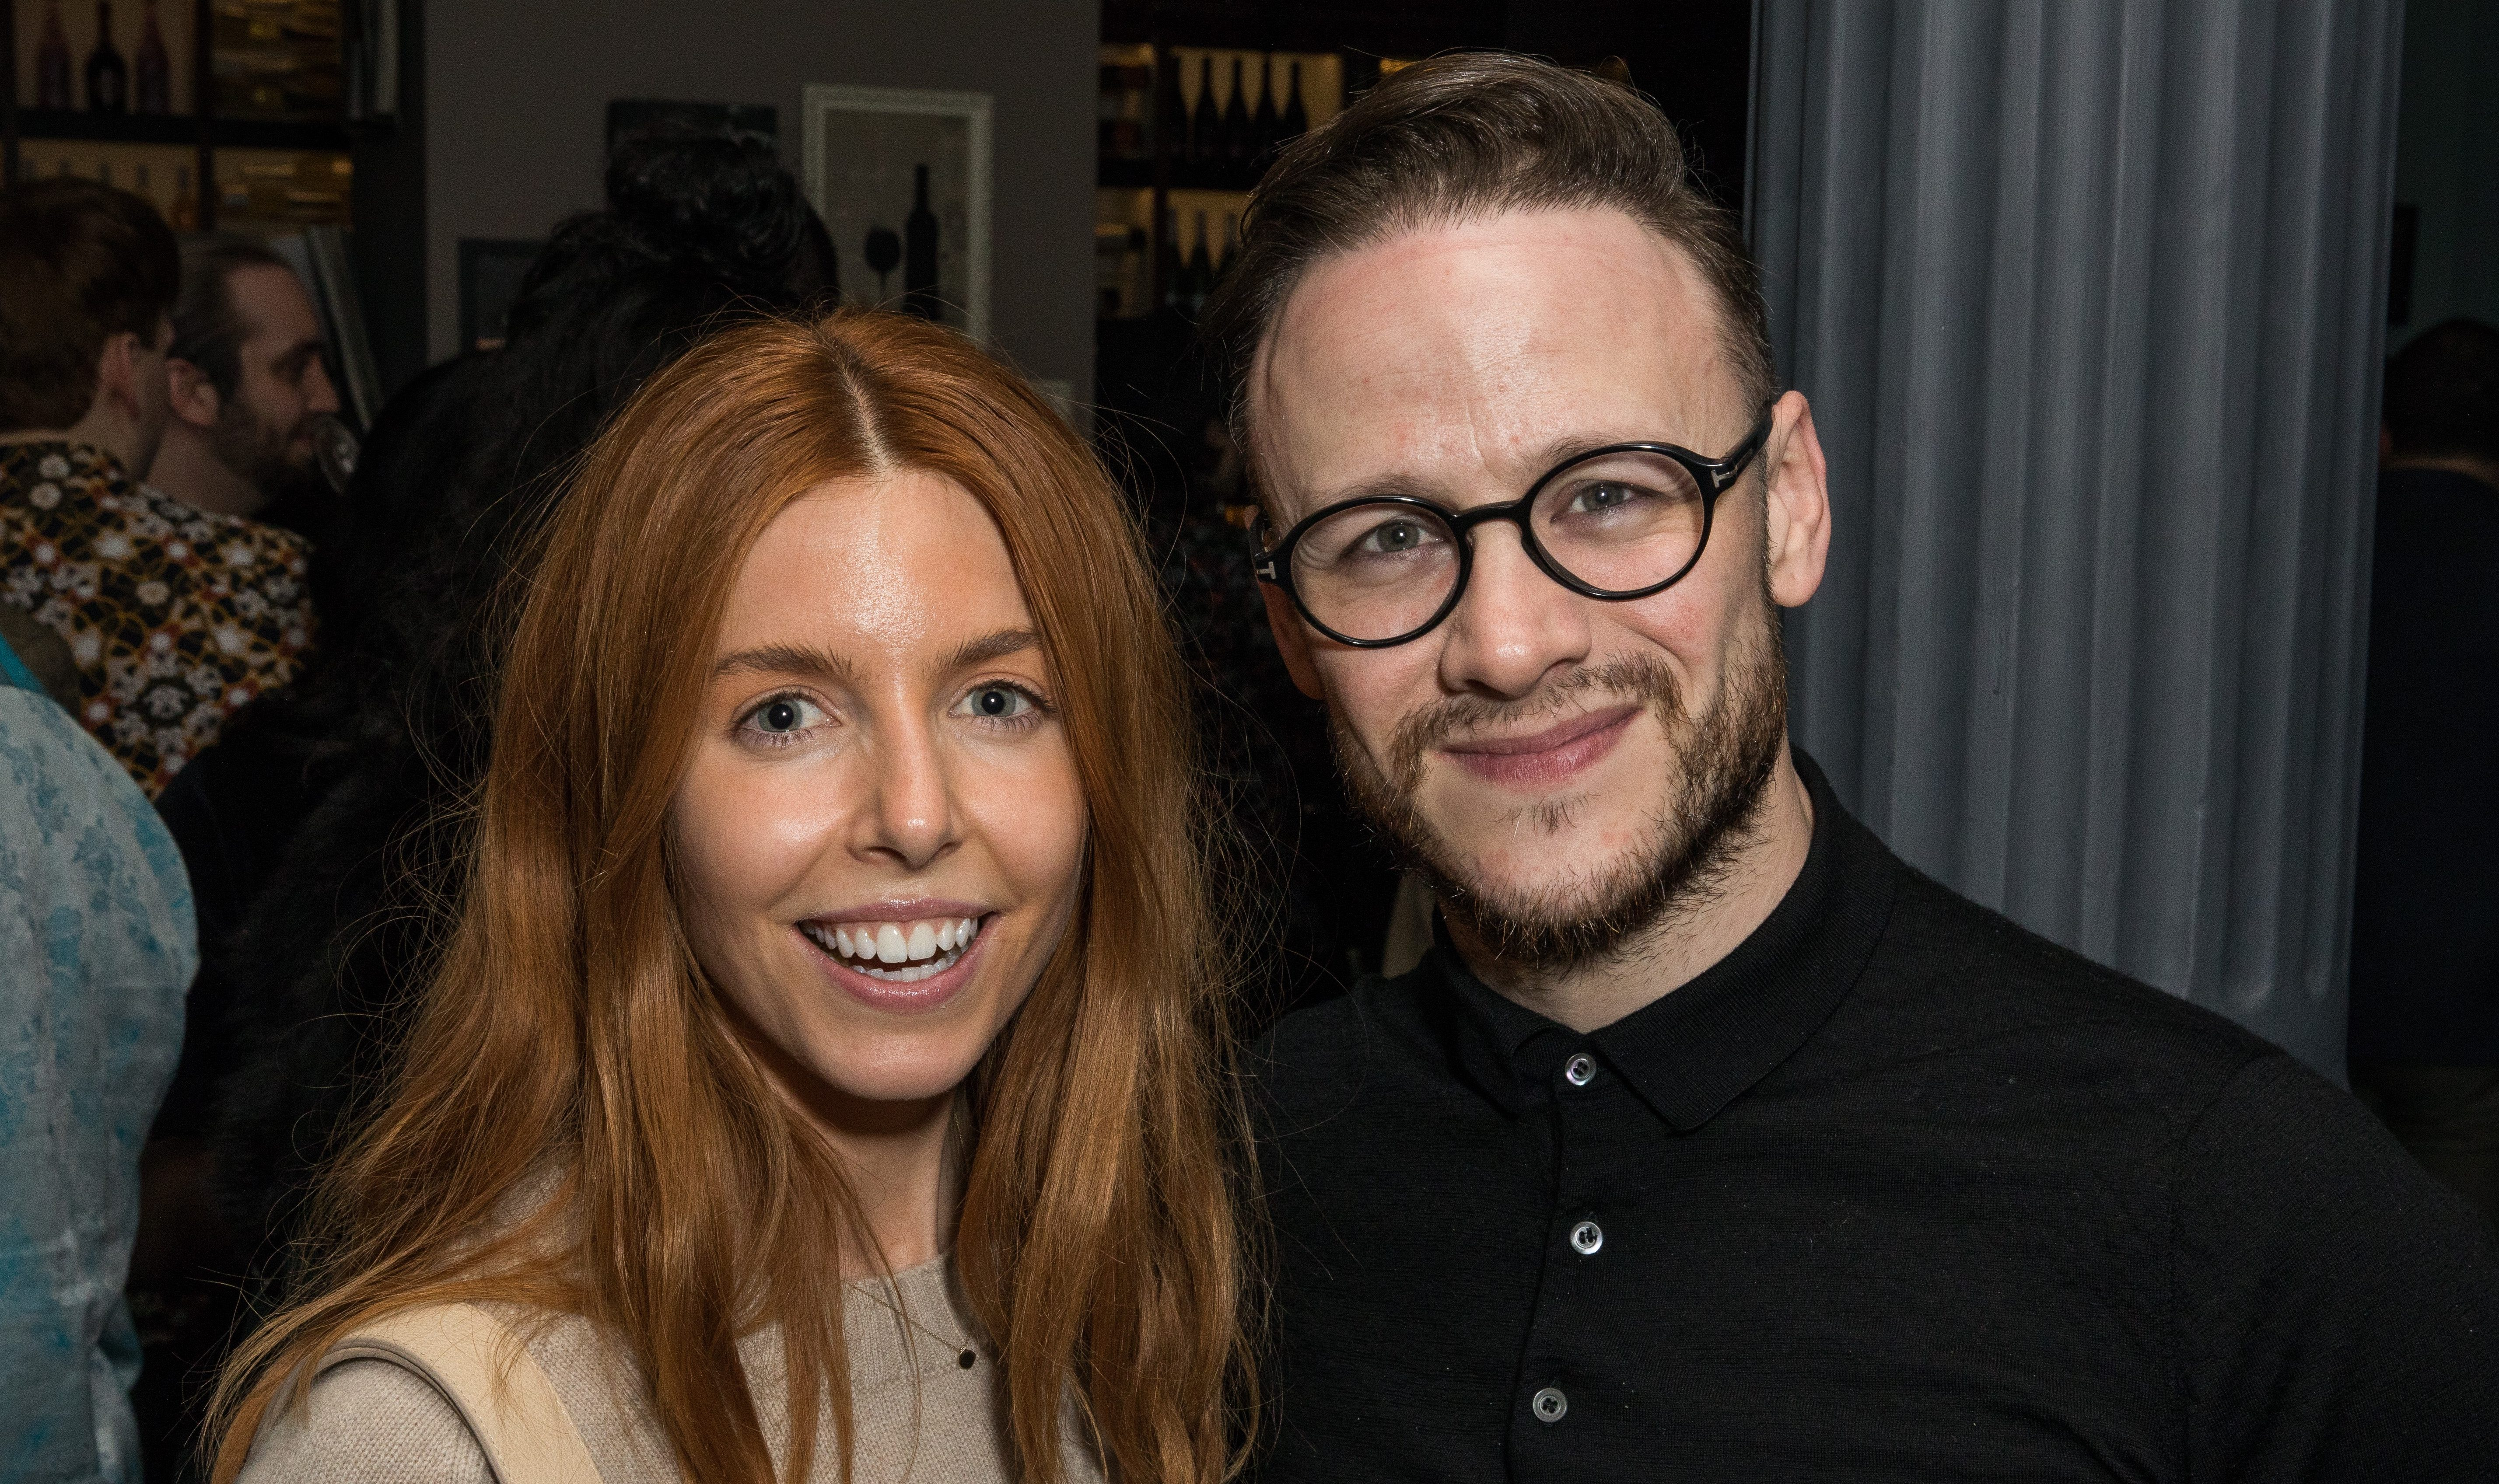 Strictly Come Dancing's Kevin Clifton kisses Stacey Dooley in rare romantic photo